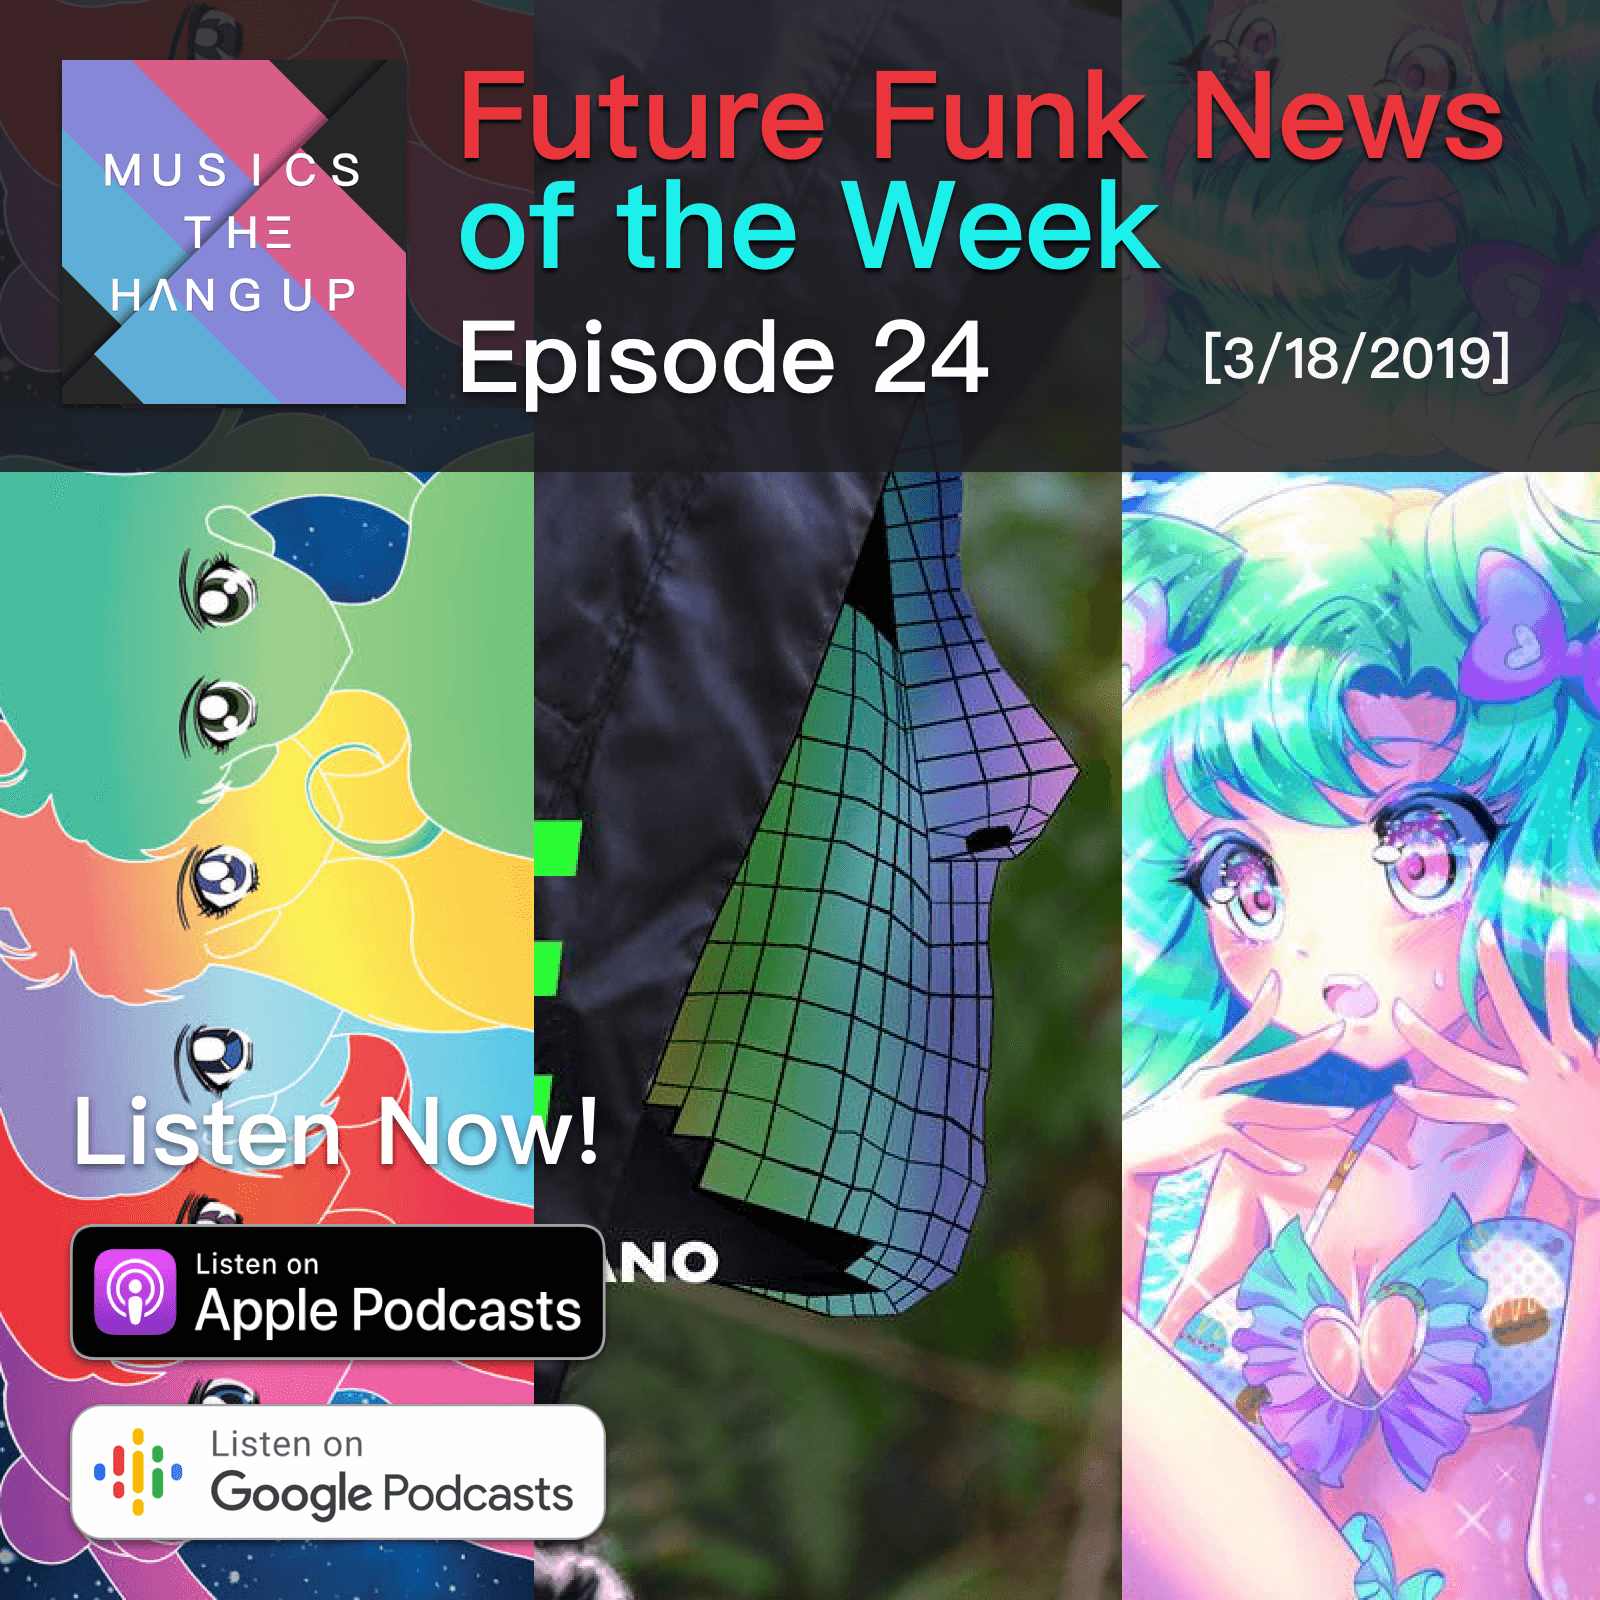 Future Funk News of March 18th, 2019